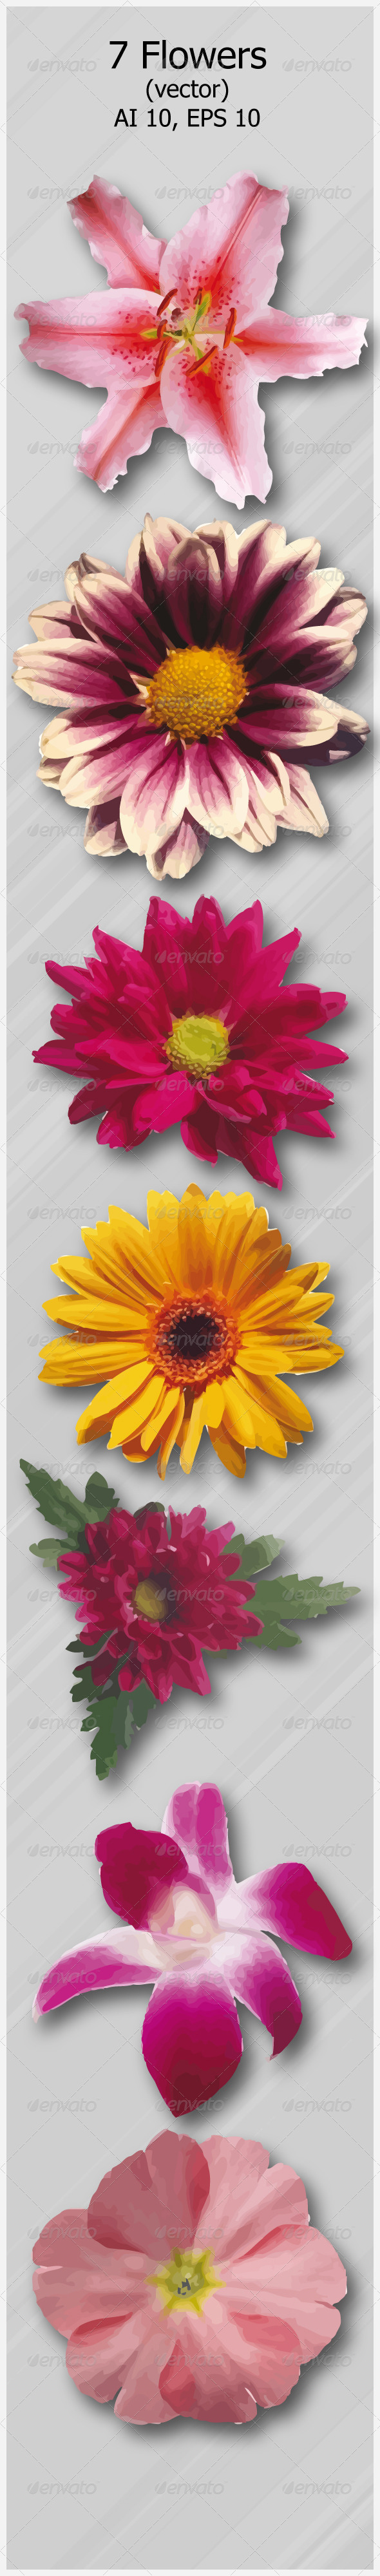 GraphicRiver 7 Flowers 4607638